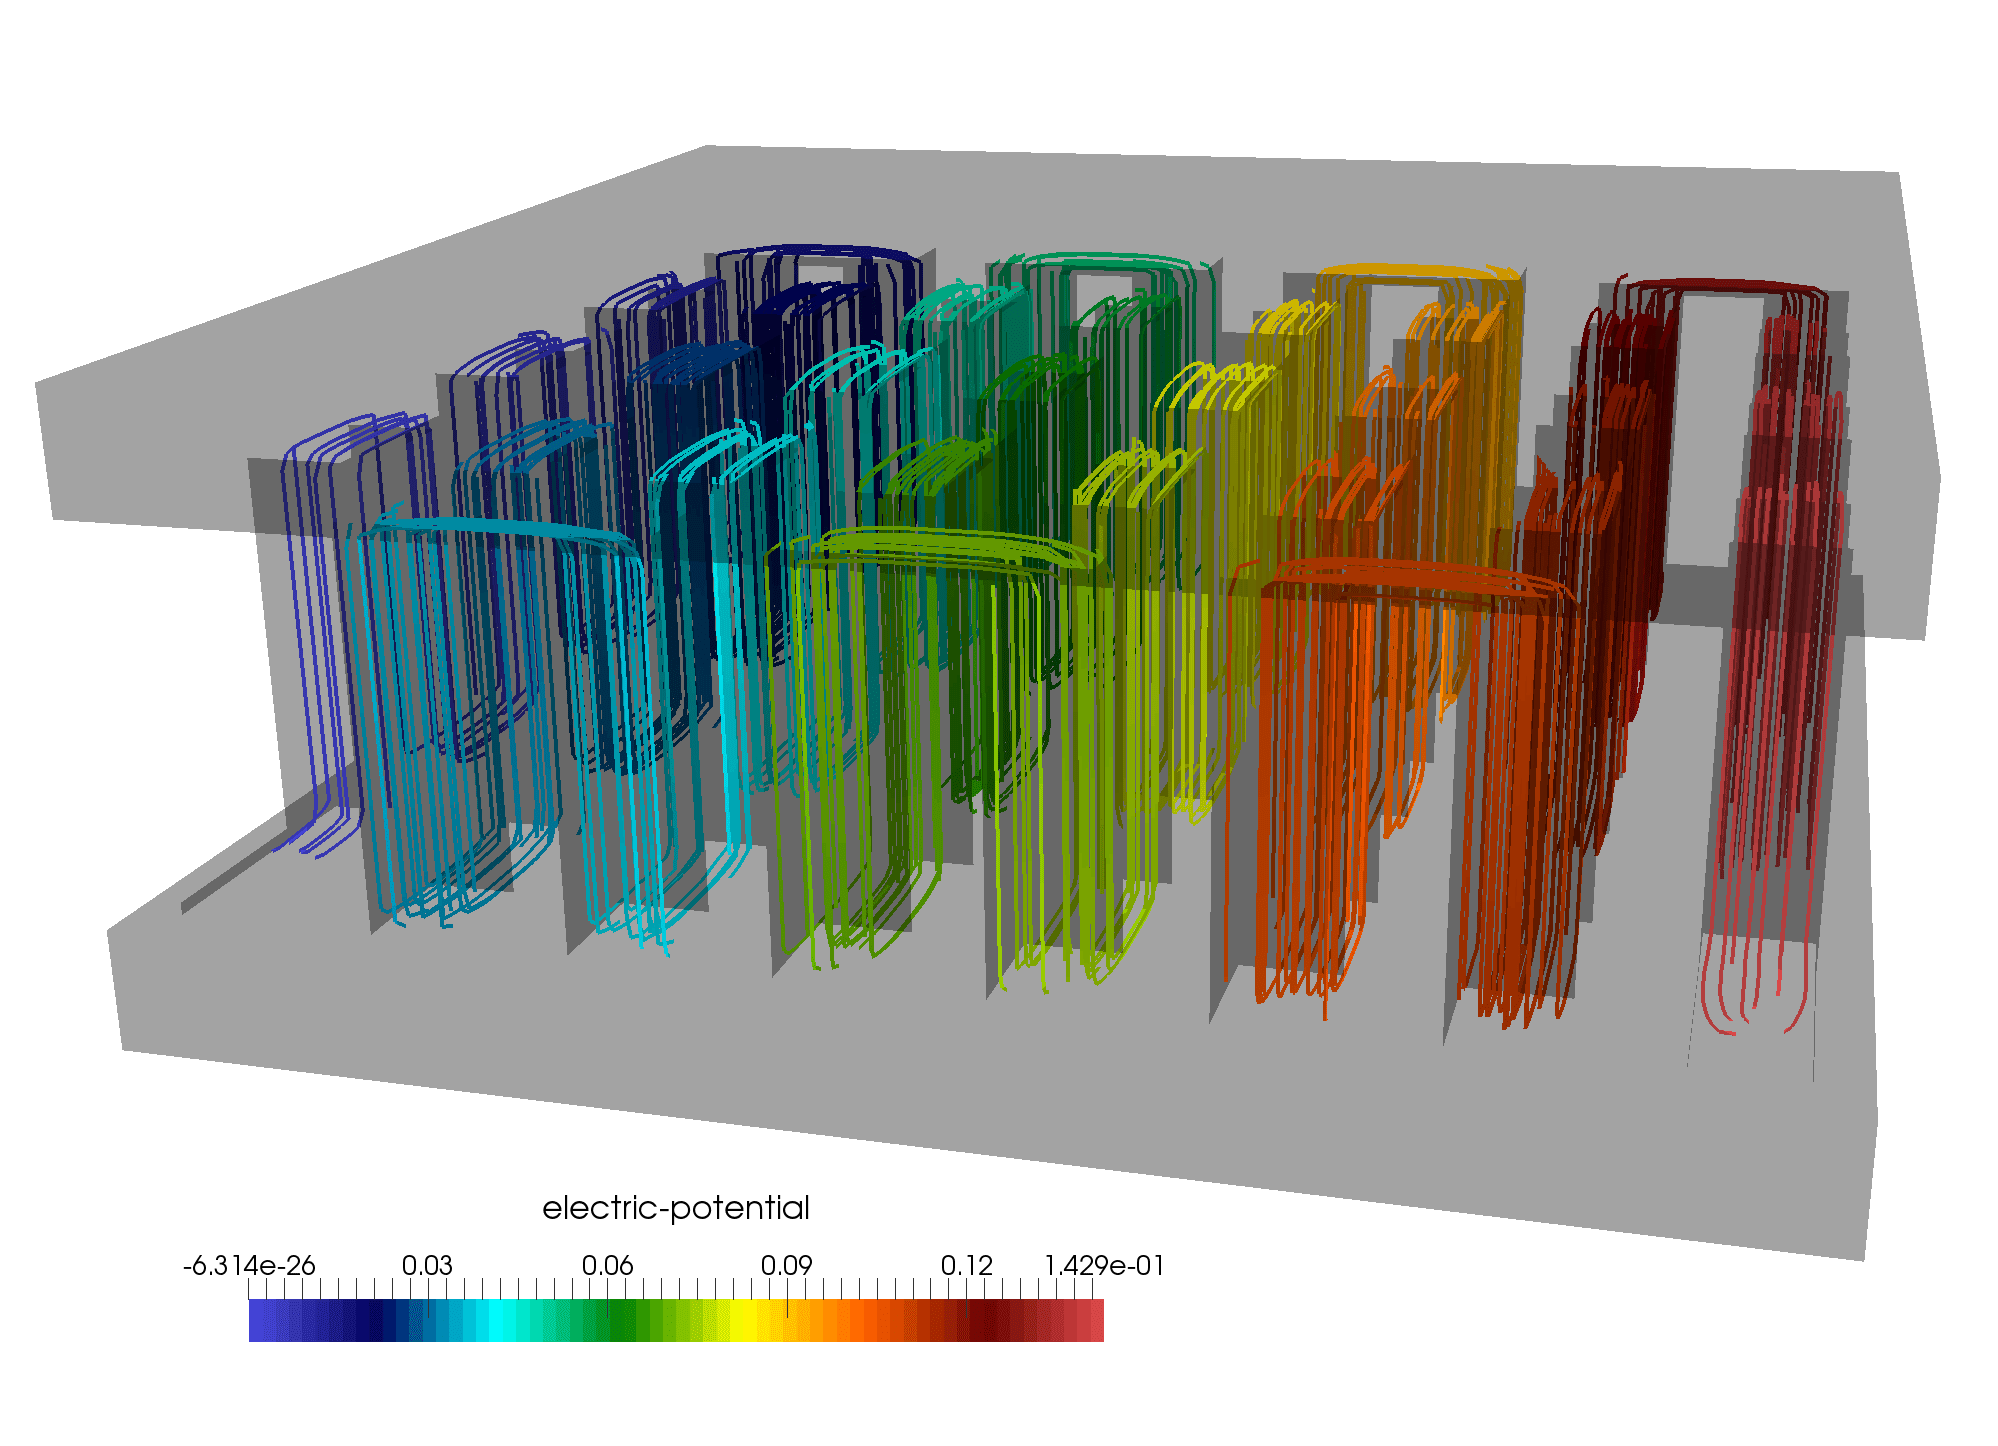 Electric potential in the Peltier module